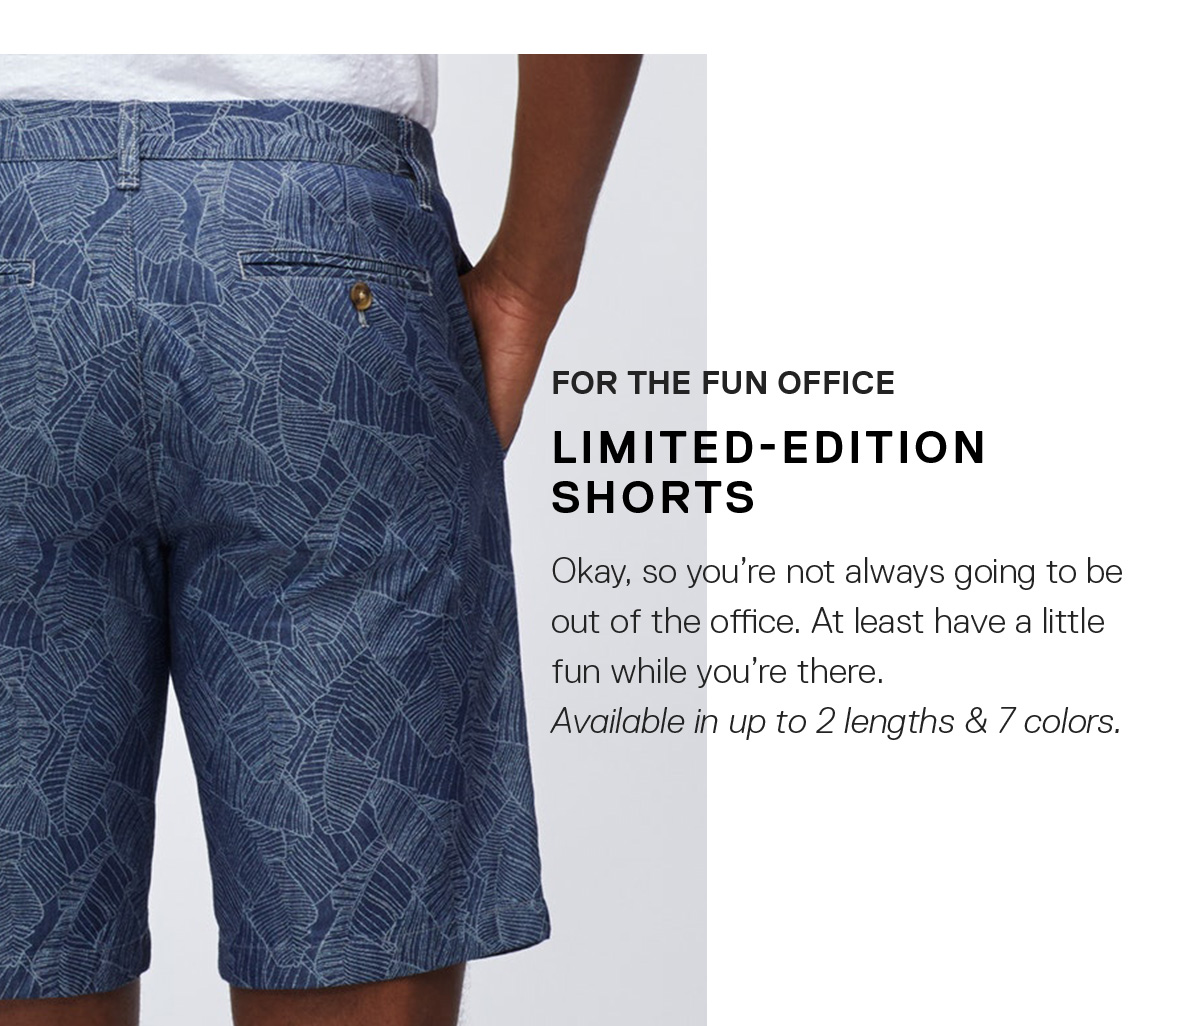 For the Fun Office: Limited-Edition Shorts / Okay, so you're not always going to be out of the office. At least have a little fun while you're there.